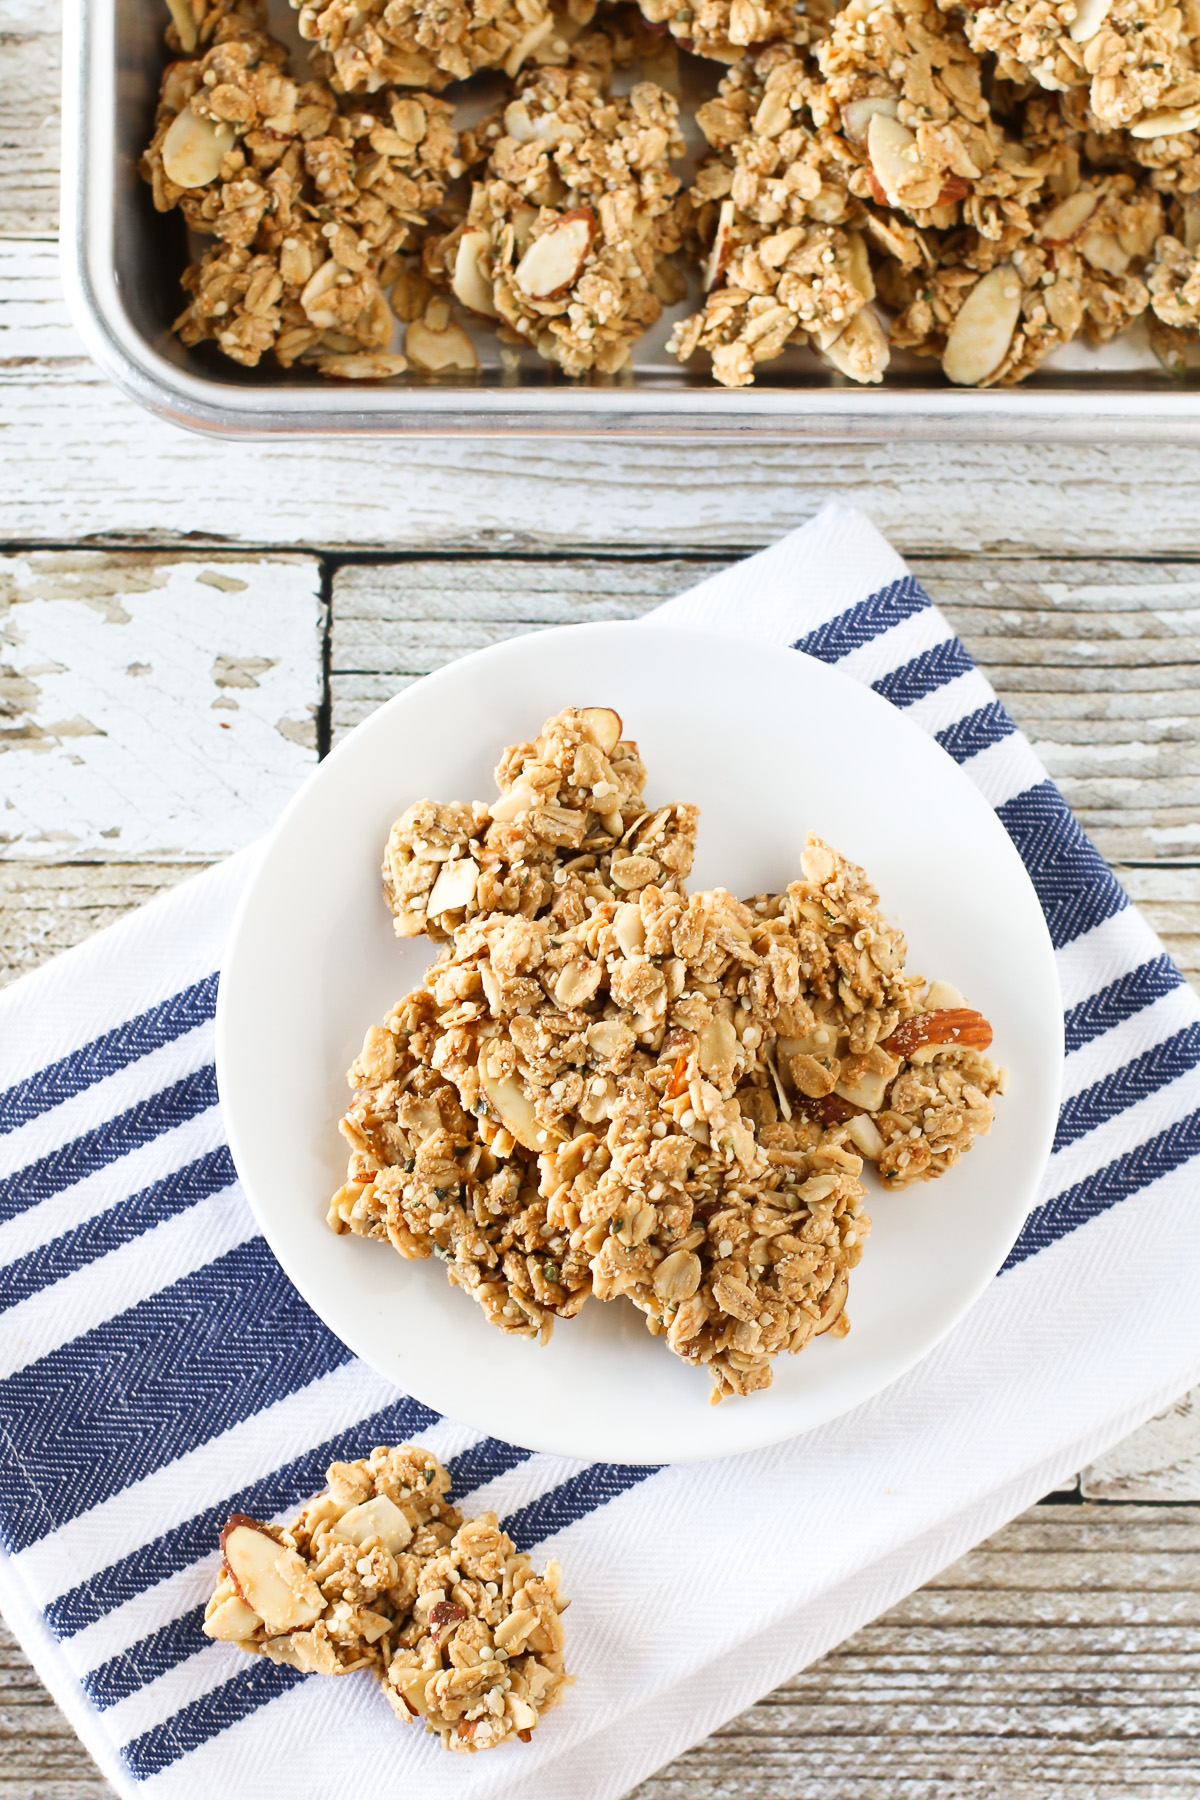 Gluten free vegan maple almond granola clusters. The best part of granola! Crunchy clusters of maple-sweetened granola, packed with almonds and completely irresistible.